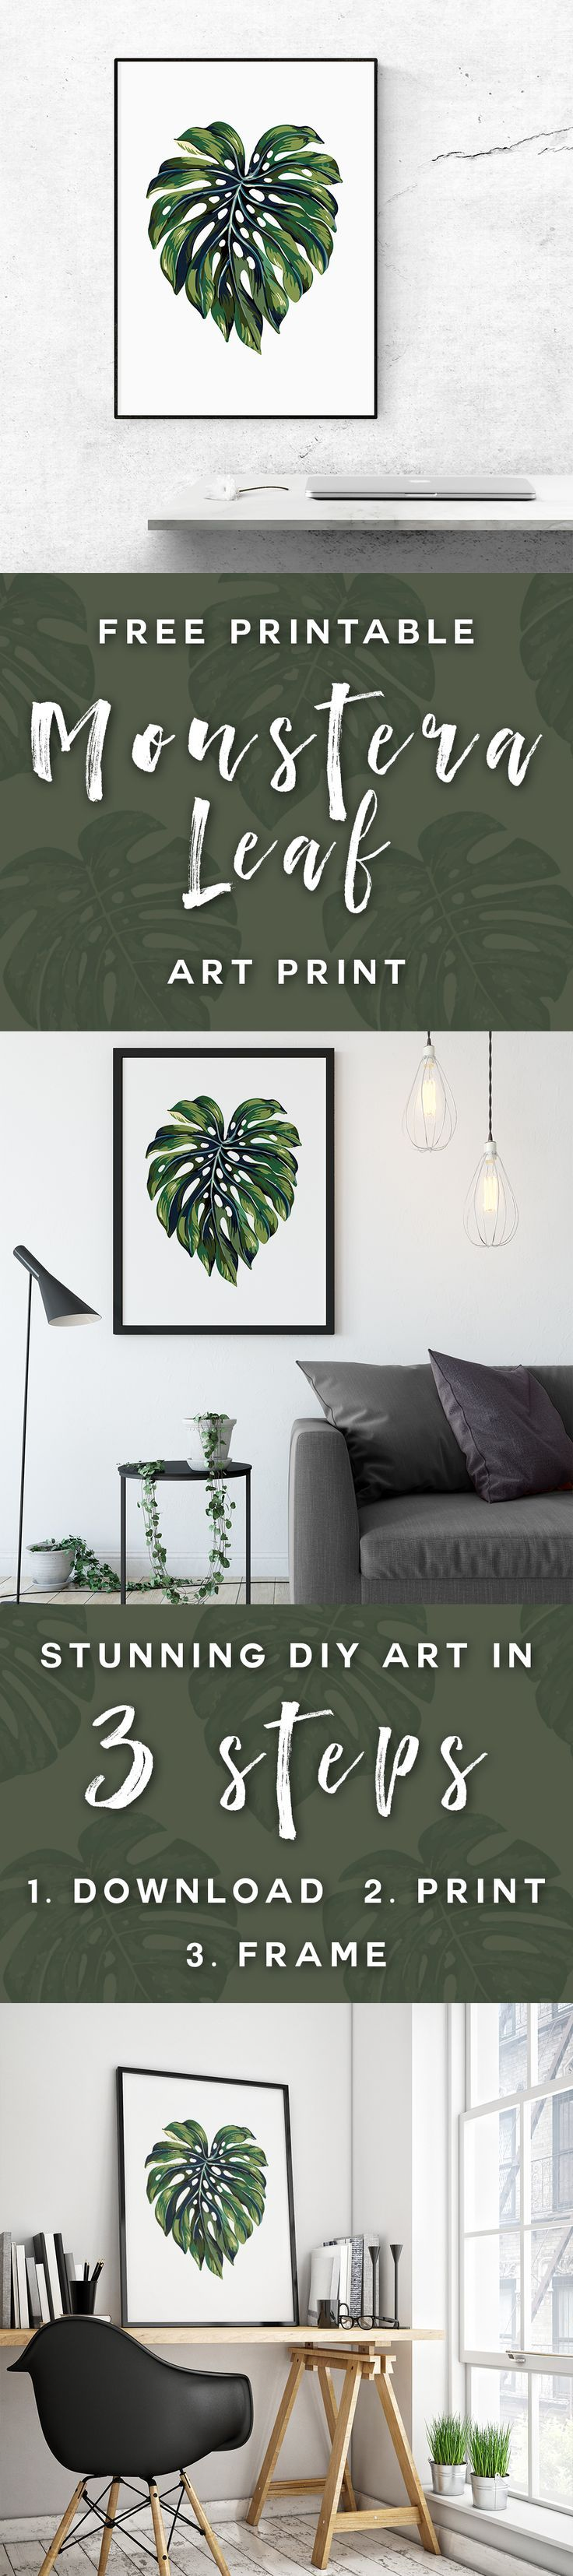 Join the tropical trend and claim your FREE printable Monstera Leaf